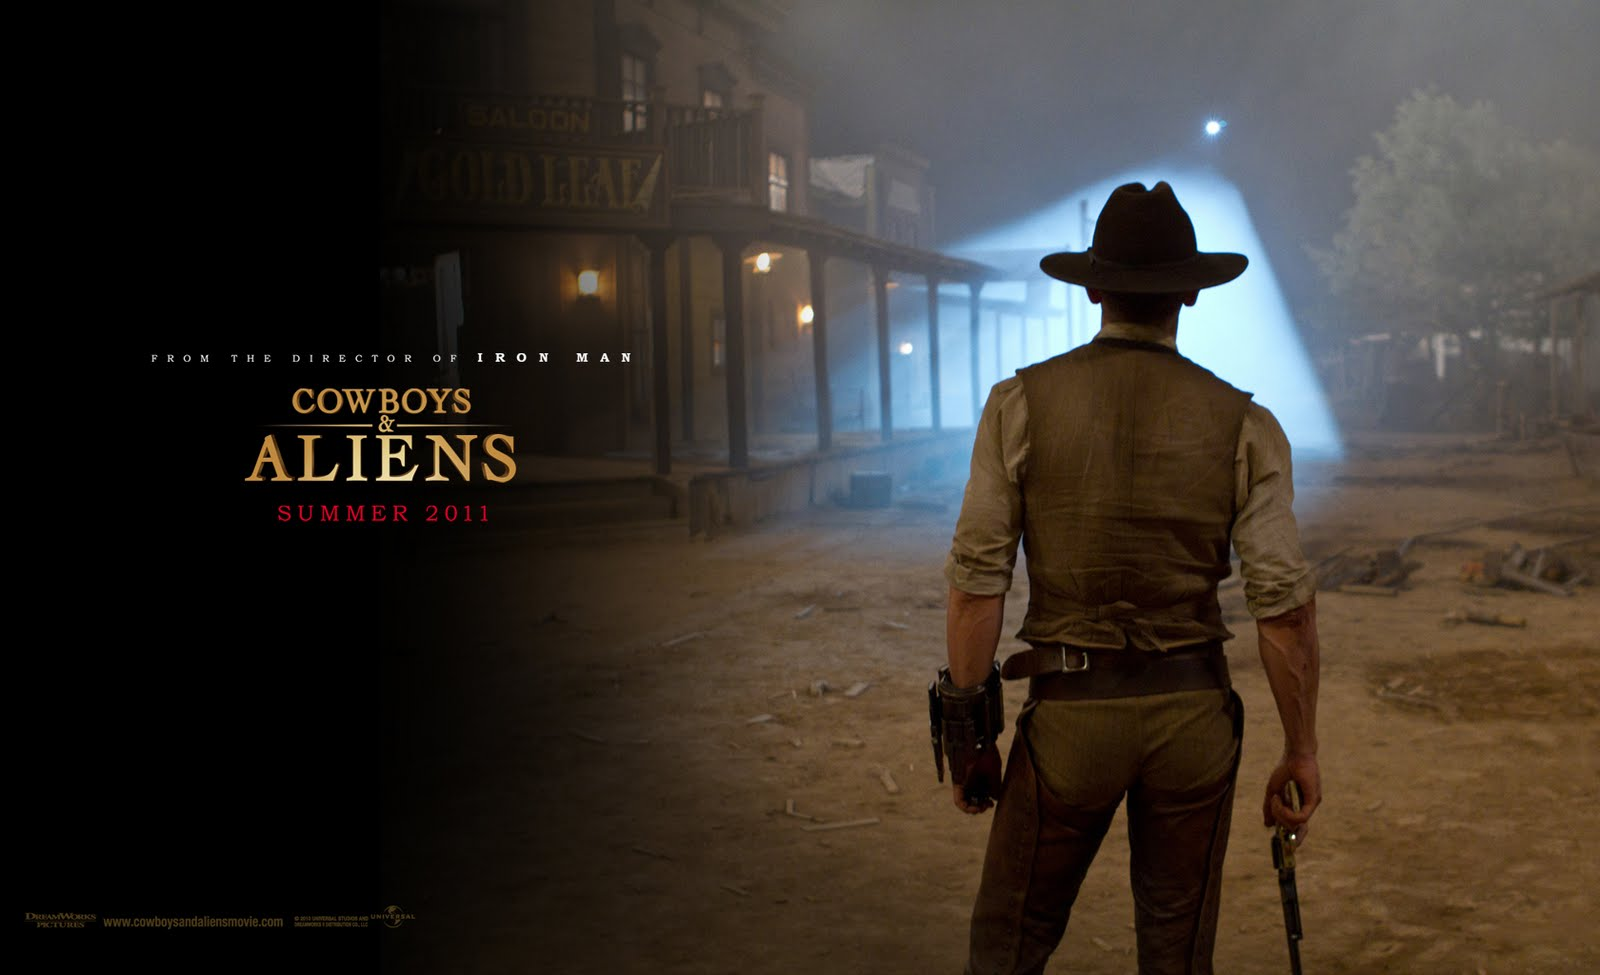 http://2.bp.blogspot.com/-A2VxH7W5lZ8/Te_PBvSNGpI/AAAAAAAAAUo/8F9B2-TieDs/s1600/COW_BOYS_AND_ALIENS_MOVIE_WALLPAPER.jpg